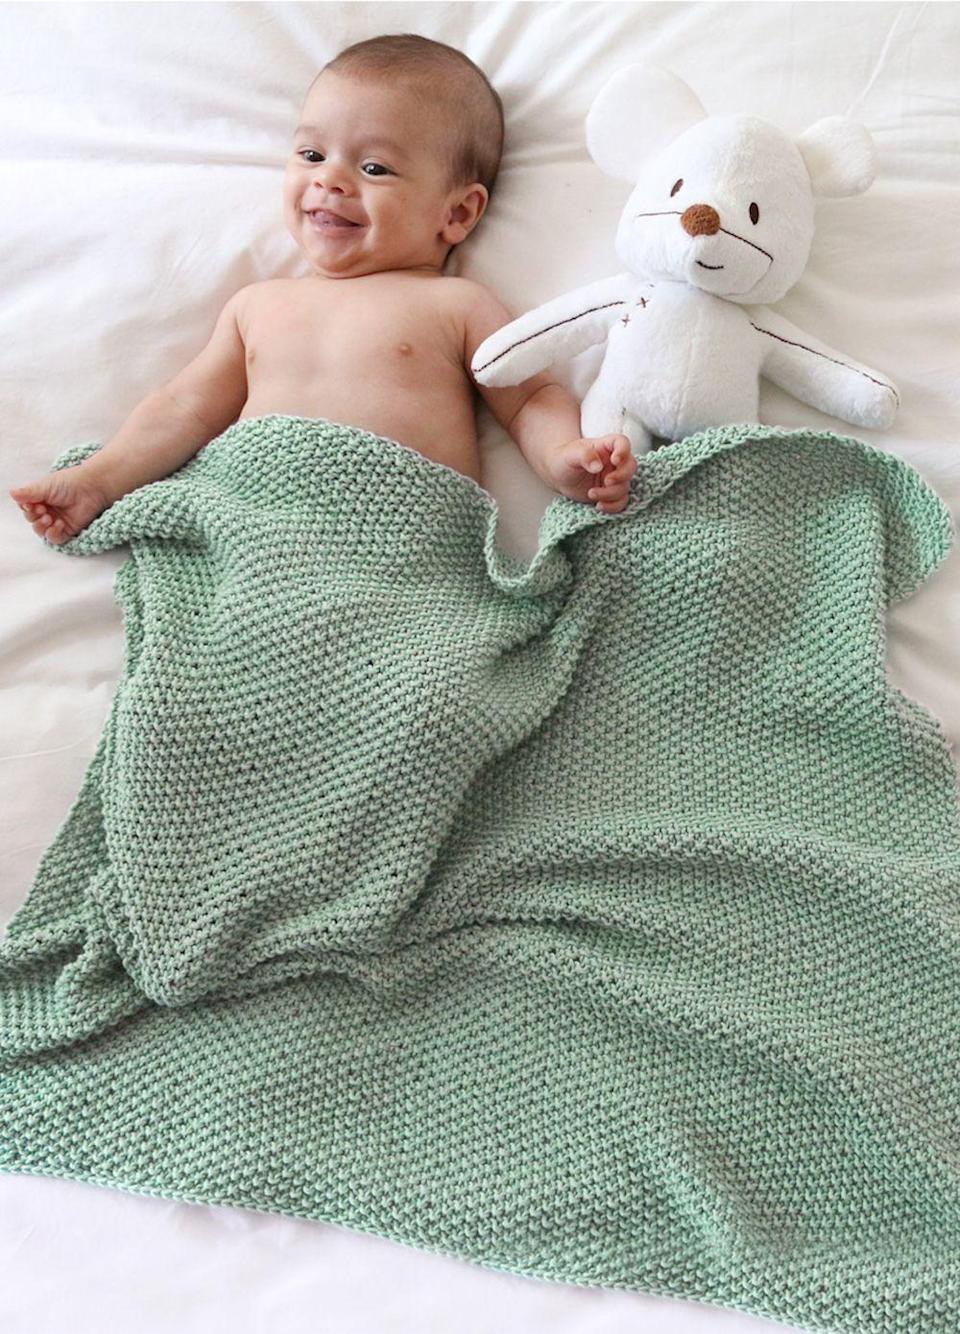 """<p><a class=""""link rapid-noclick-resp"""" href=""""https://www.weareknitters.co.uk/knitting-kit/knitting-levels/easy-level/dragonfly-blanket"""" rel=""""nofollow noopener"""" target=""""_blank"""" data-ylk=""""slk:BUY NOW"""">BUY NOW</a> <strong>£45, We Are Knitters</strong></p><p><a href=""""https://www.weareknitters.co.uk/"""" rel=""""nofollow noopener"""" target=""""_blank"""" data-ylk=""""slk:We Are Knitters"""" class=""""link rapid-noclick-resp"""">We Are Knitters</a> has an extensive range of beginners knitting kits, including this super-cute, soft baby blanket kit – which is available in a whole host of colours.</p><p><strong>What's in the kit:</strong> This is the most comprehensive list of contents, two skeins of Pima cotton (100g), 5mm knitting needles, the pattern, a smaller knitter's sewing needle, and the embroidered label.</p><p><strong>Best for: </strong>Little bundles of joy.</p>"""